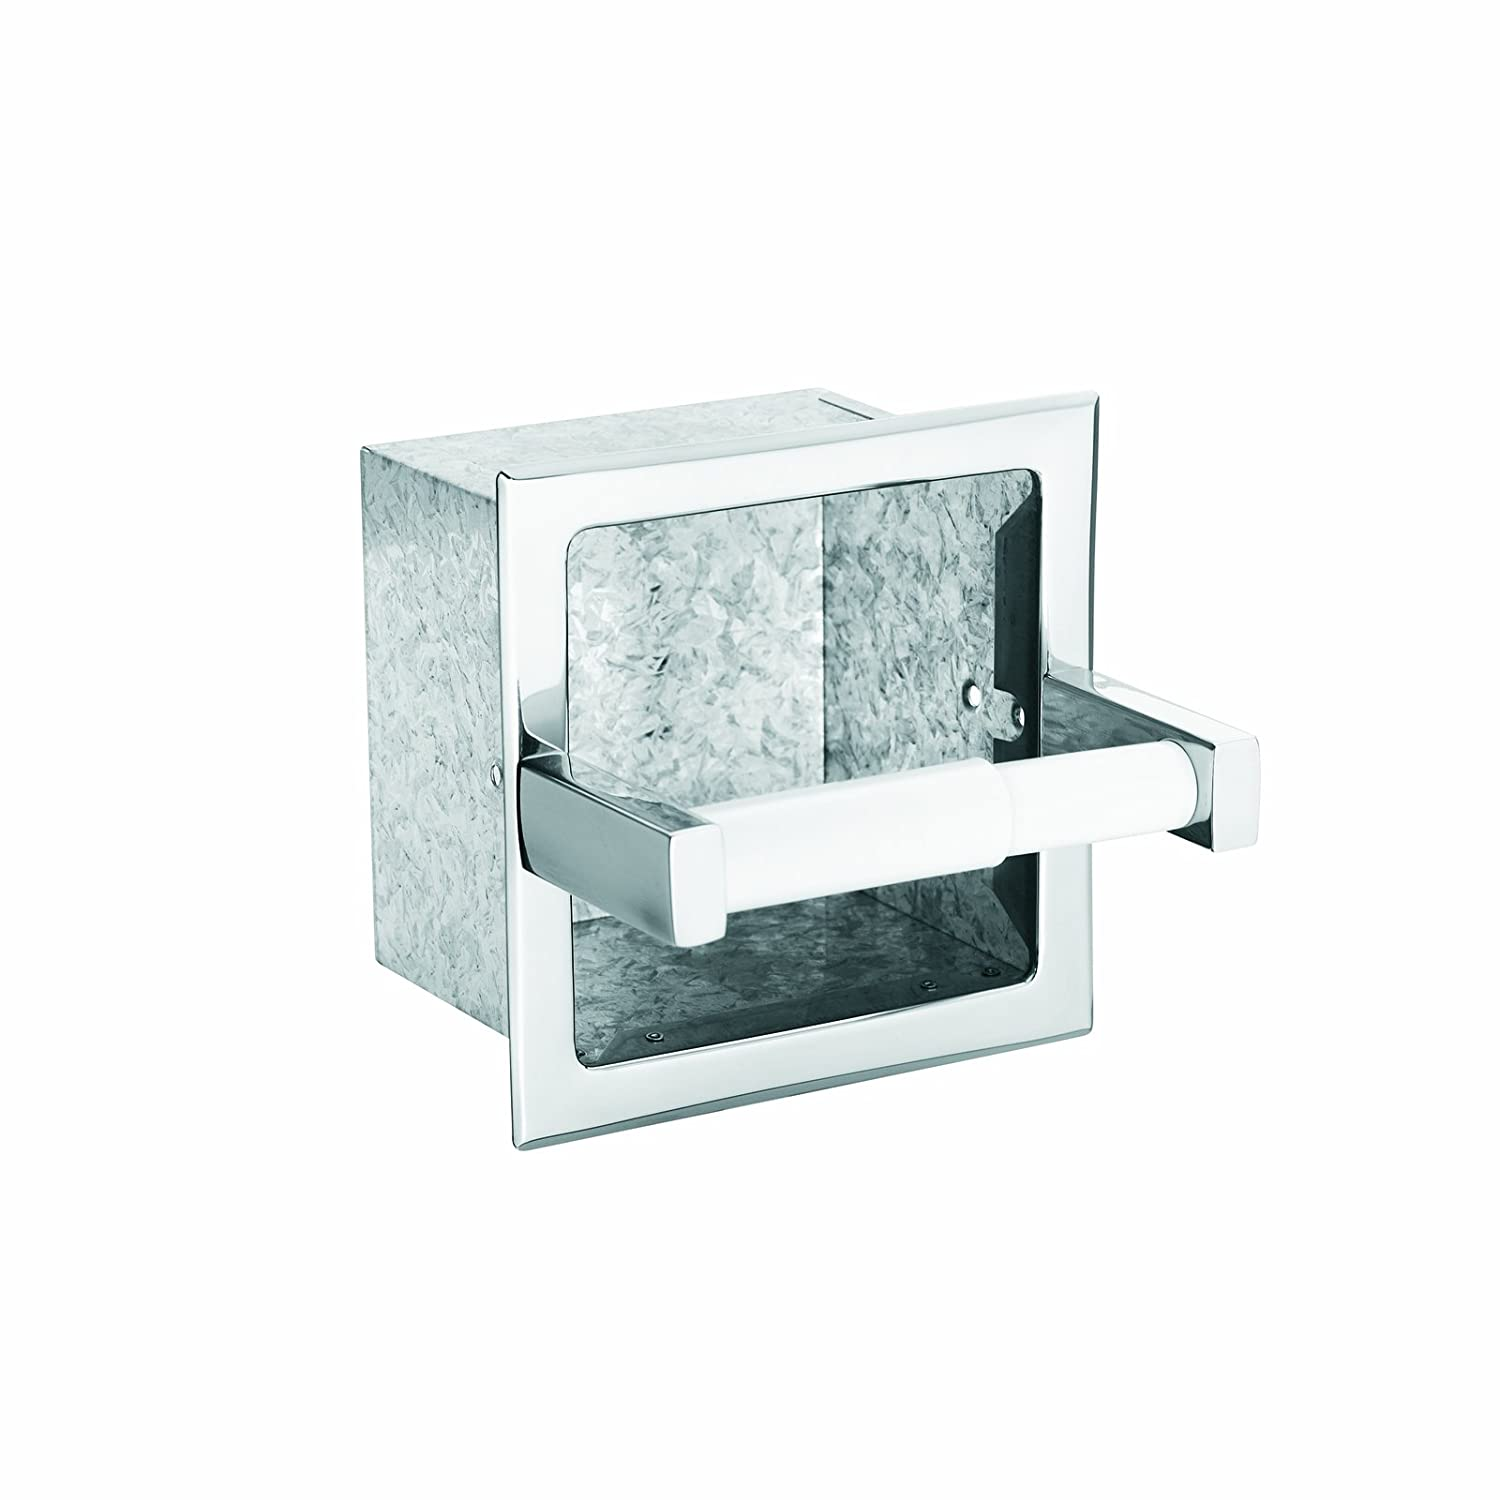 Moen 5571 Donner Hotel and Motel Extra Roll Recessed Paper Holder Chrome